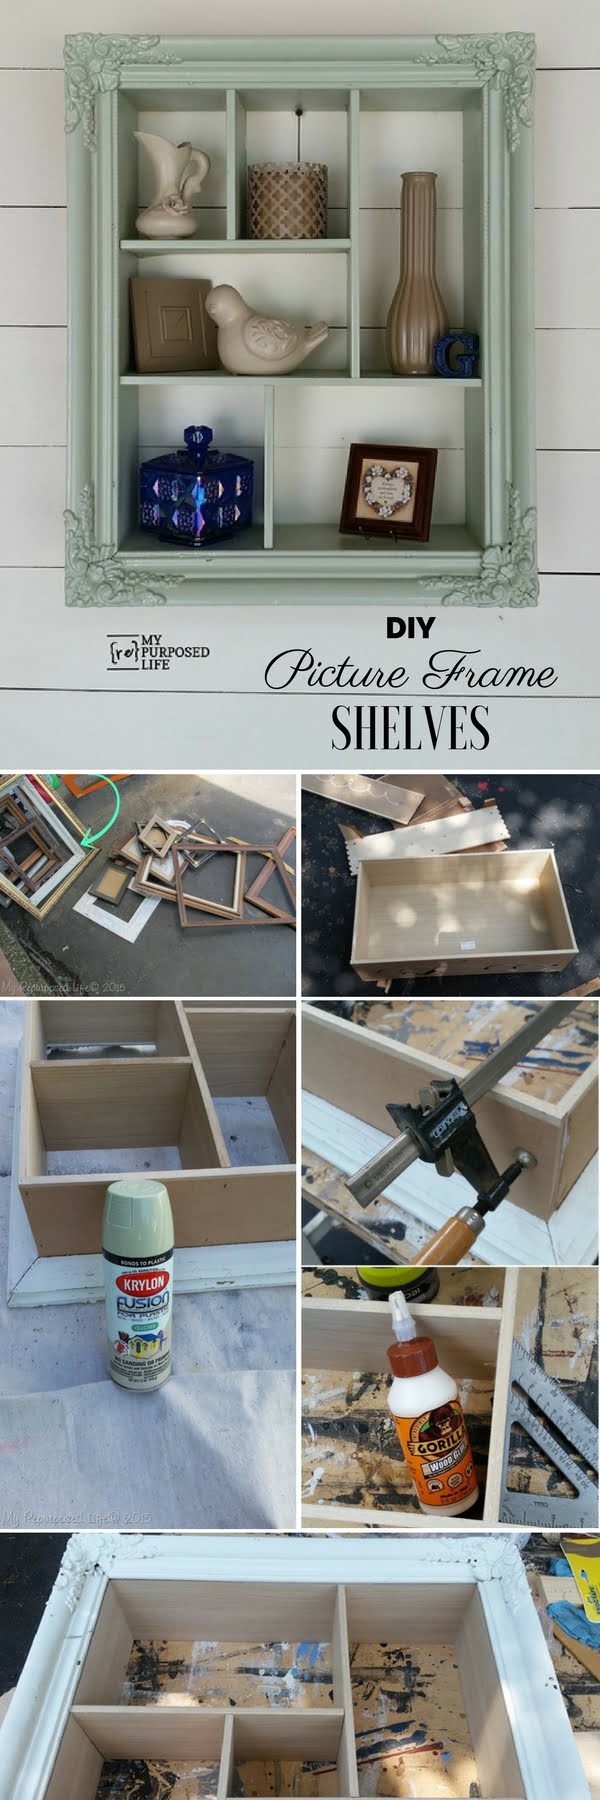 15 Easy and Brilliant DIY Home Decor Crafts on a Budget - Check out the tutorial: #DIY Picture Frame Shelves